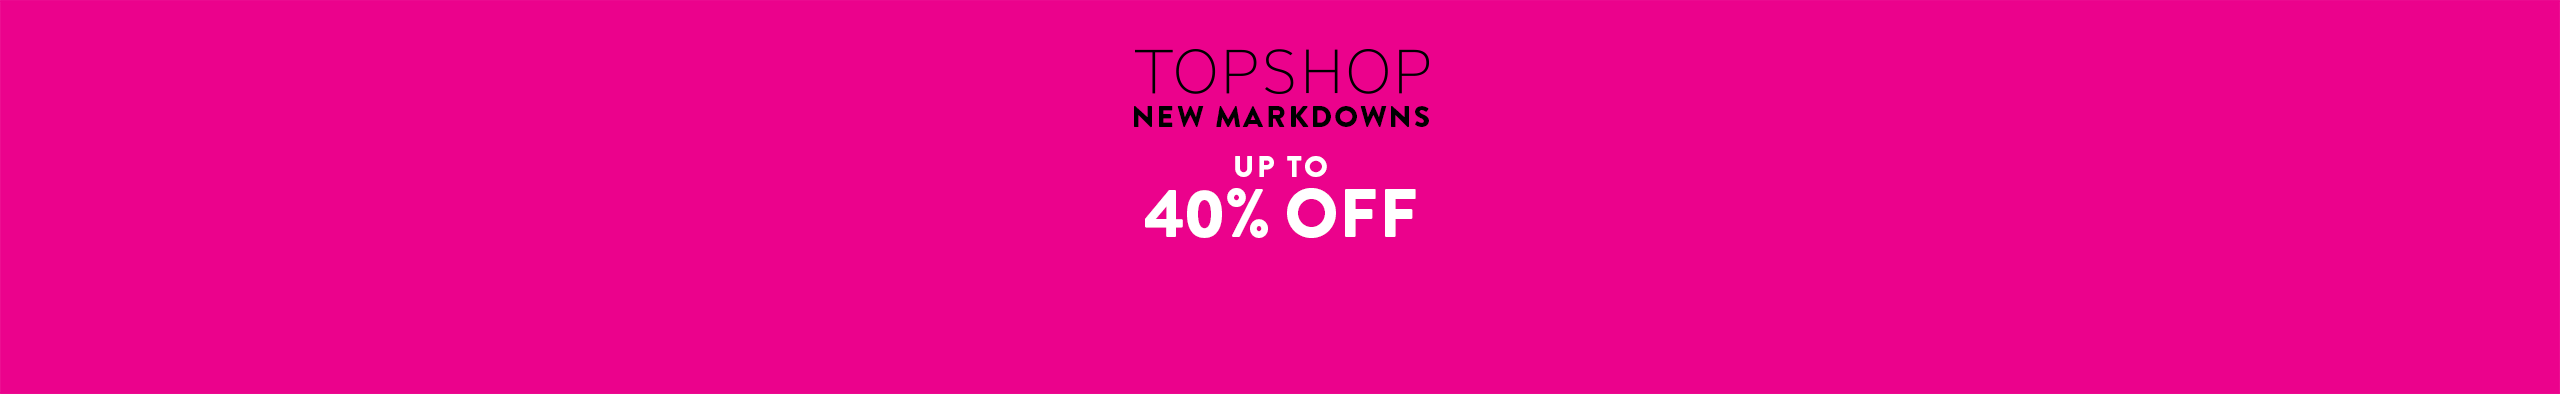 Topshop sale: up to 40% off women's clothing, shoes and accessories